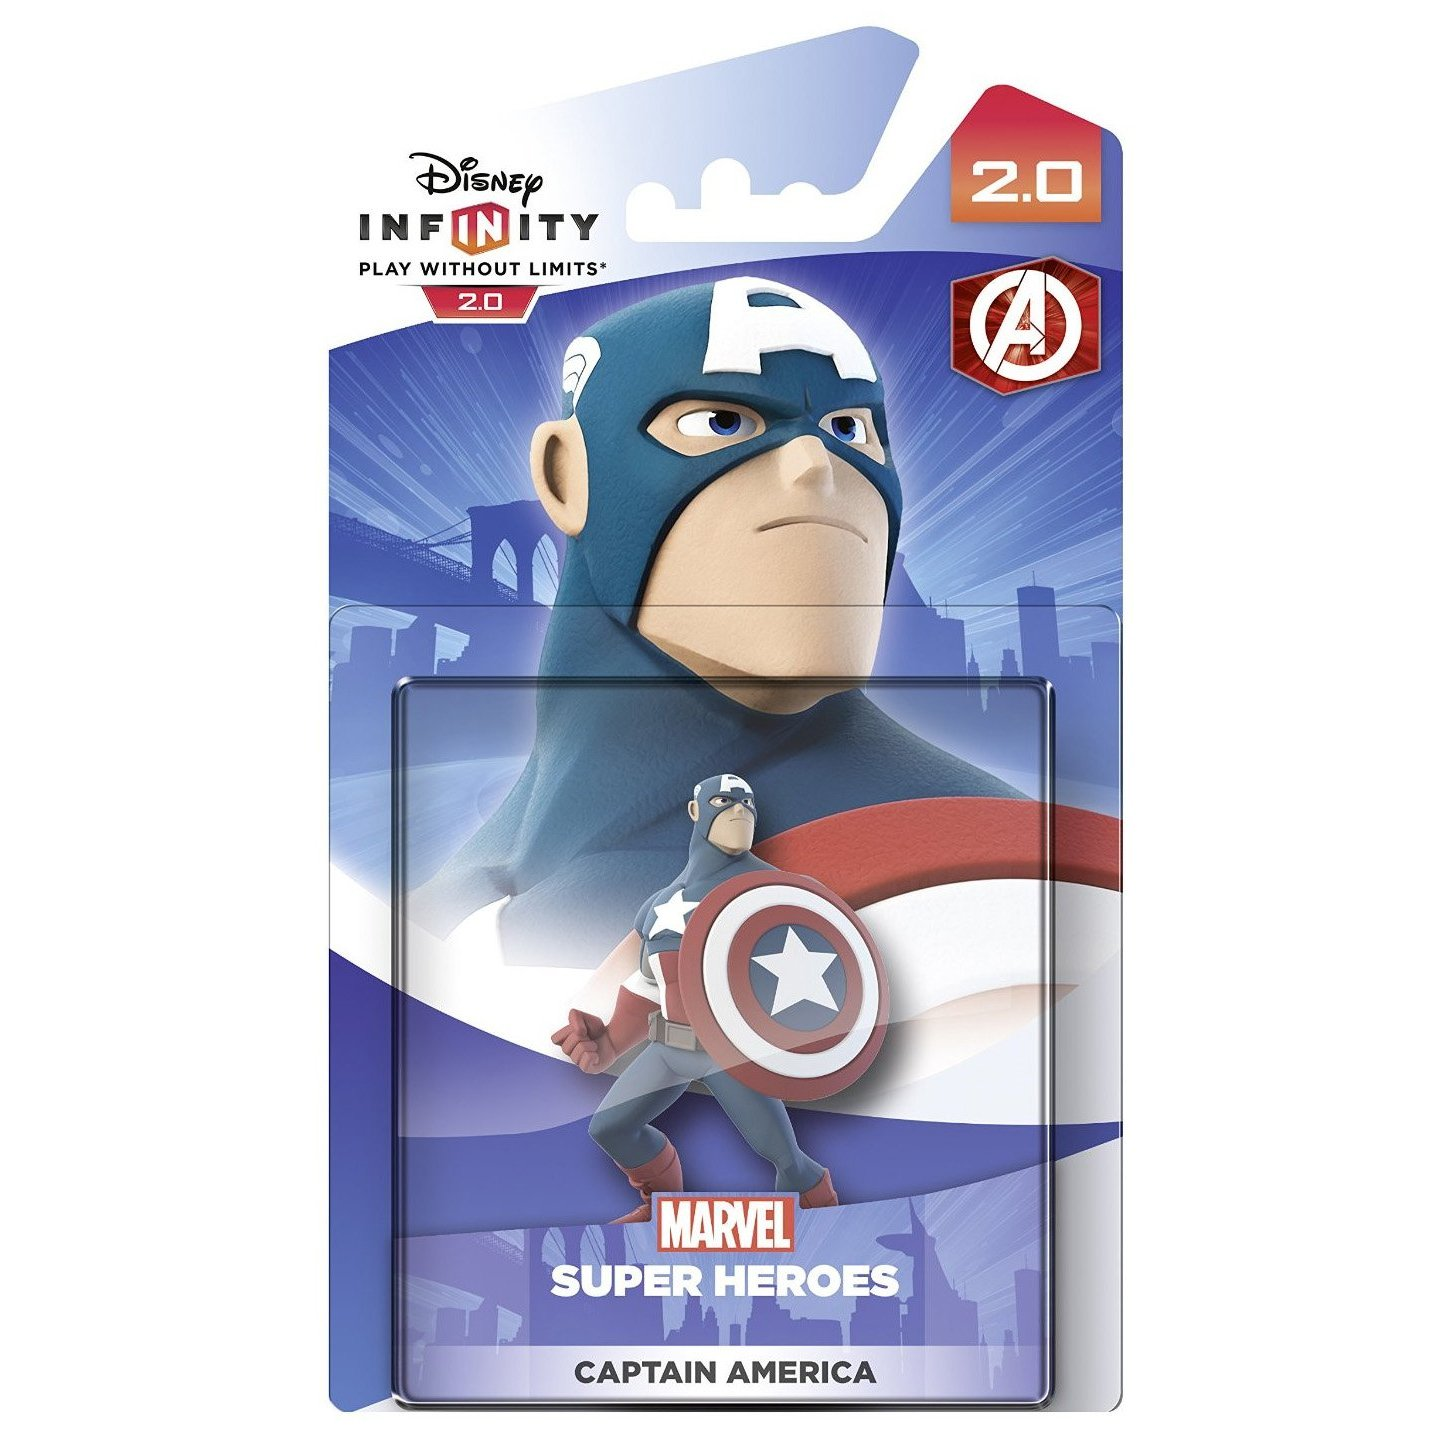 Disney Infinity 2.0 Captain America Figure